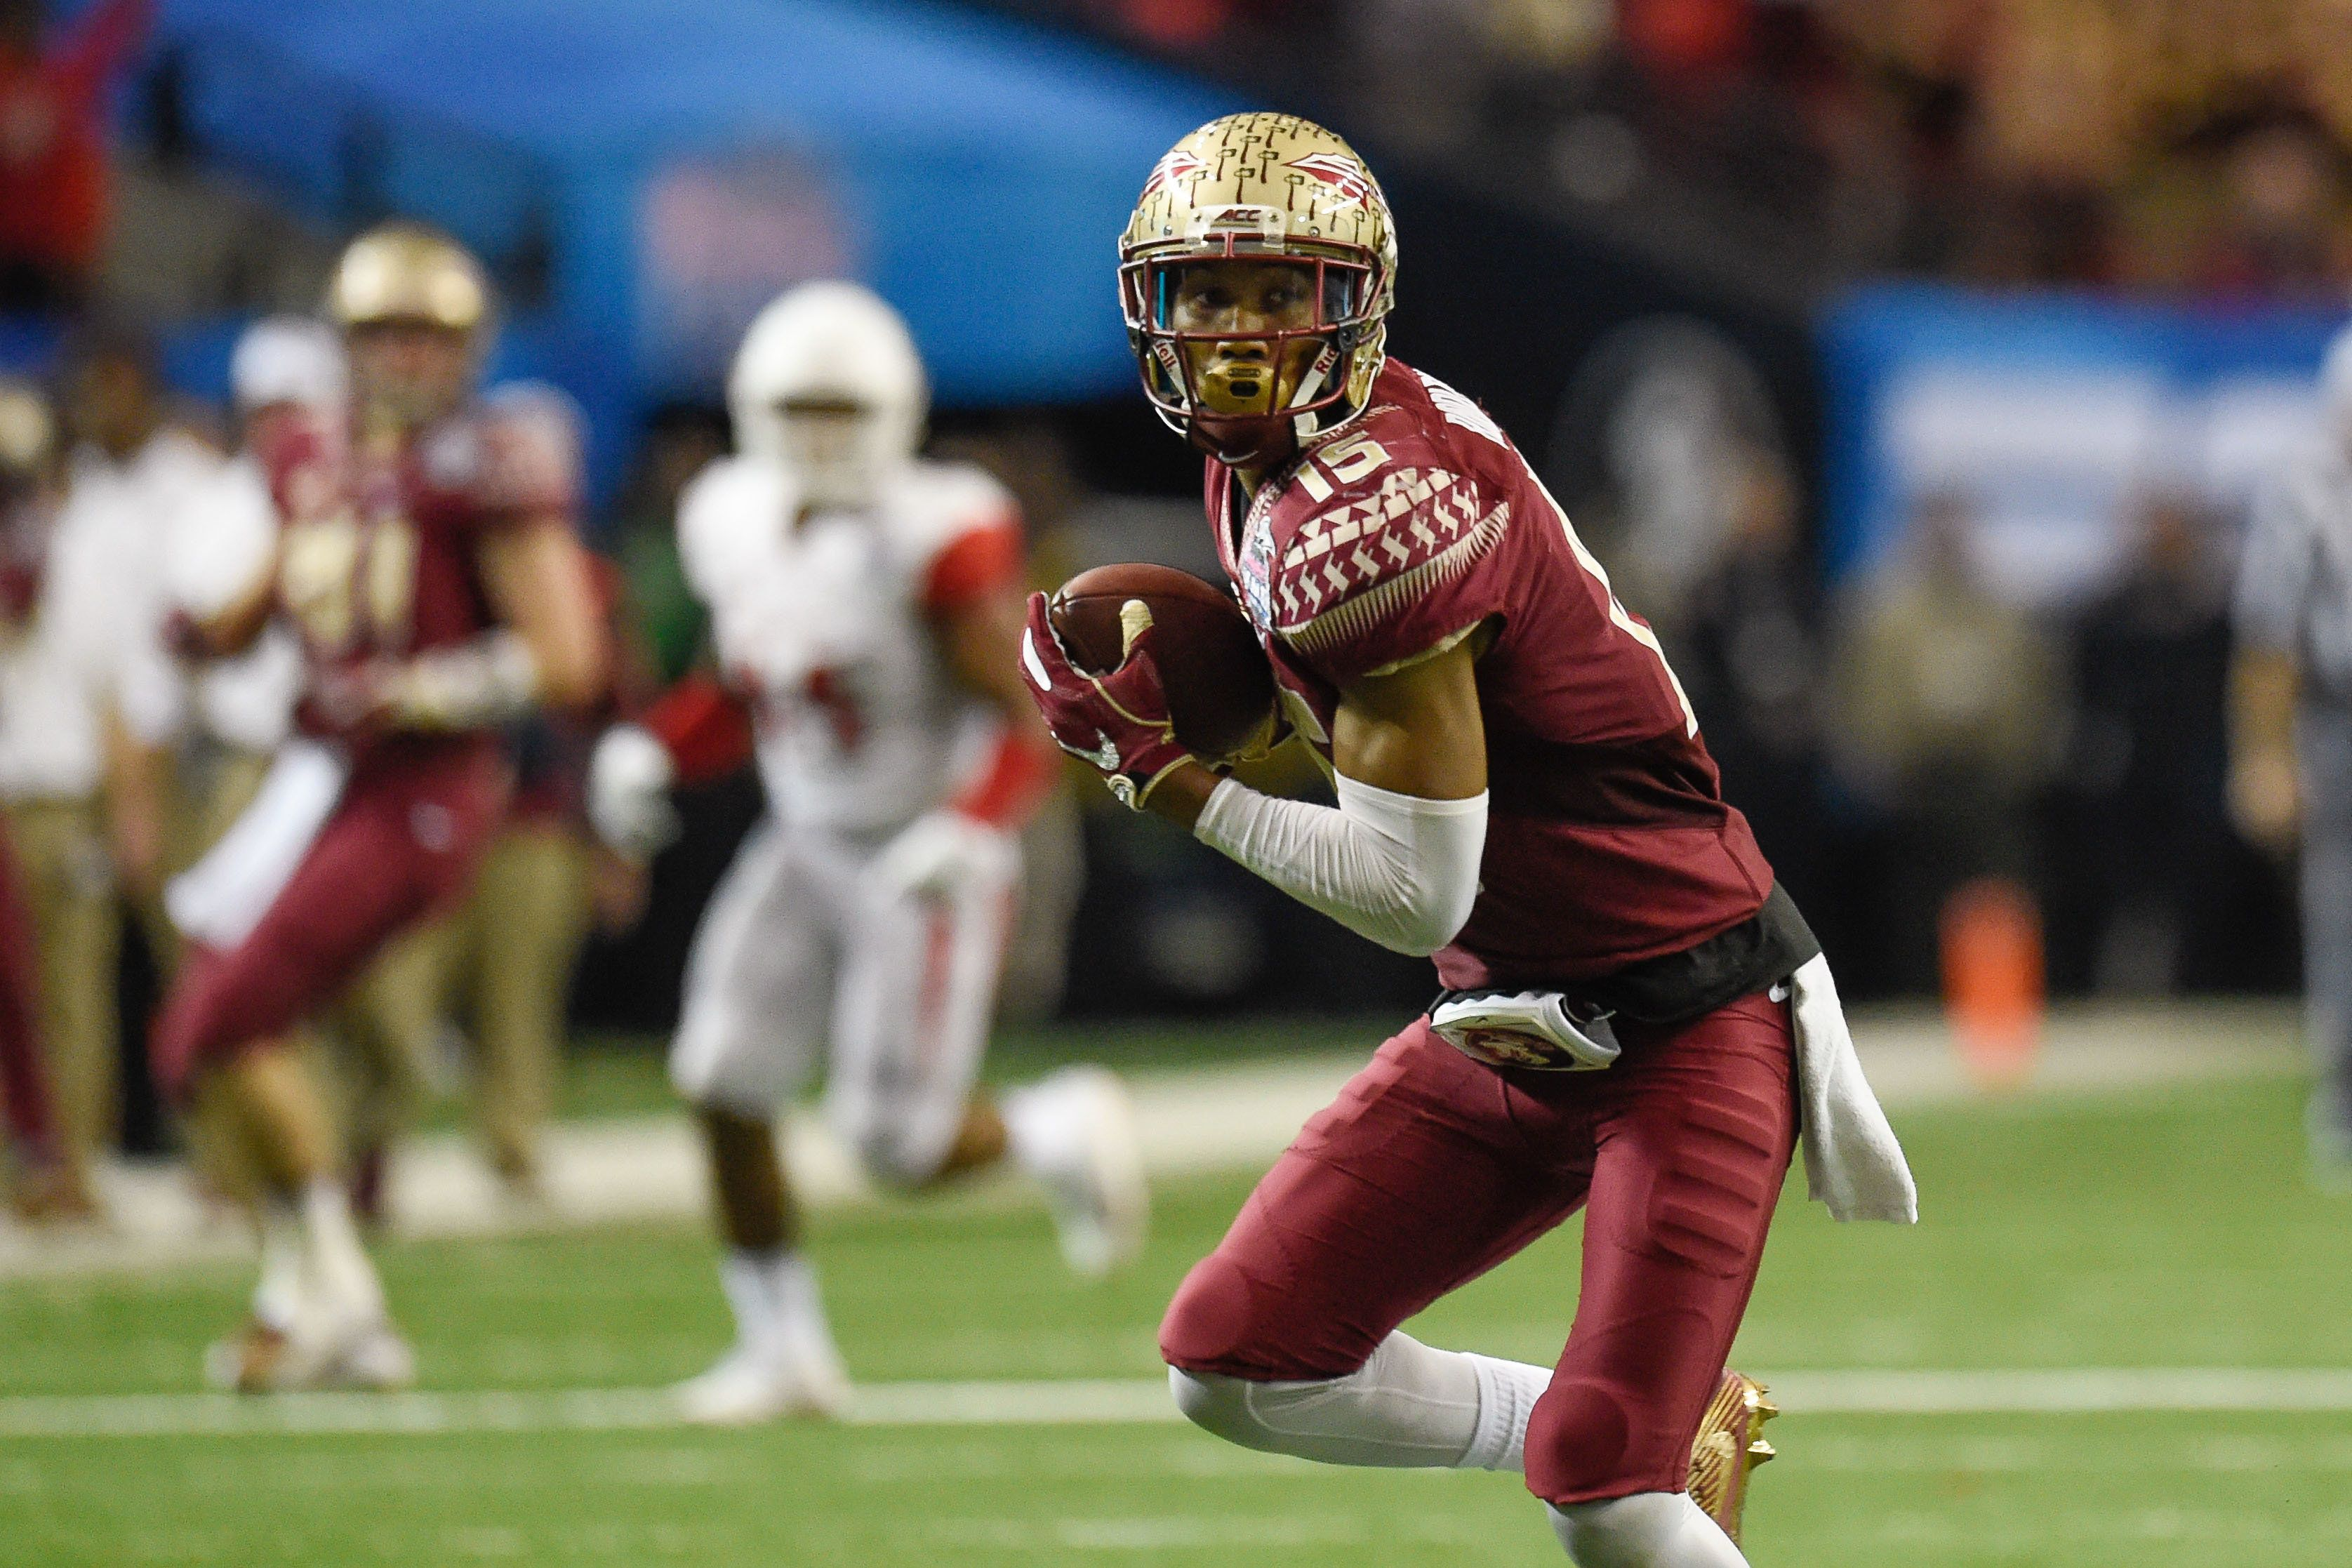 Florida State Seminoles wide receiver Travis Rudolph is being celebrated for his actions off the field after he joined a boy